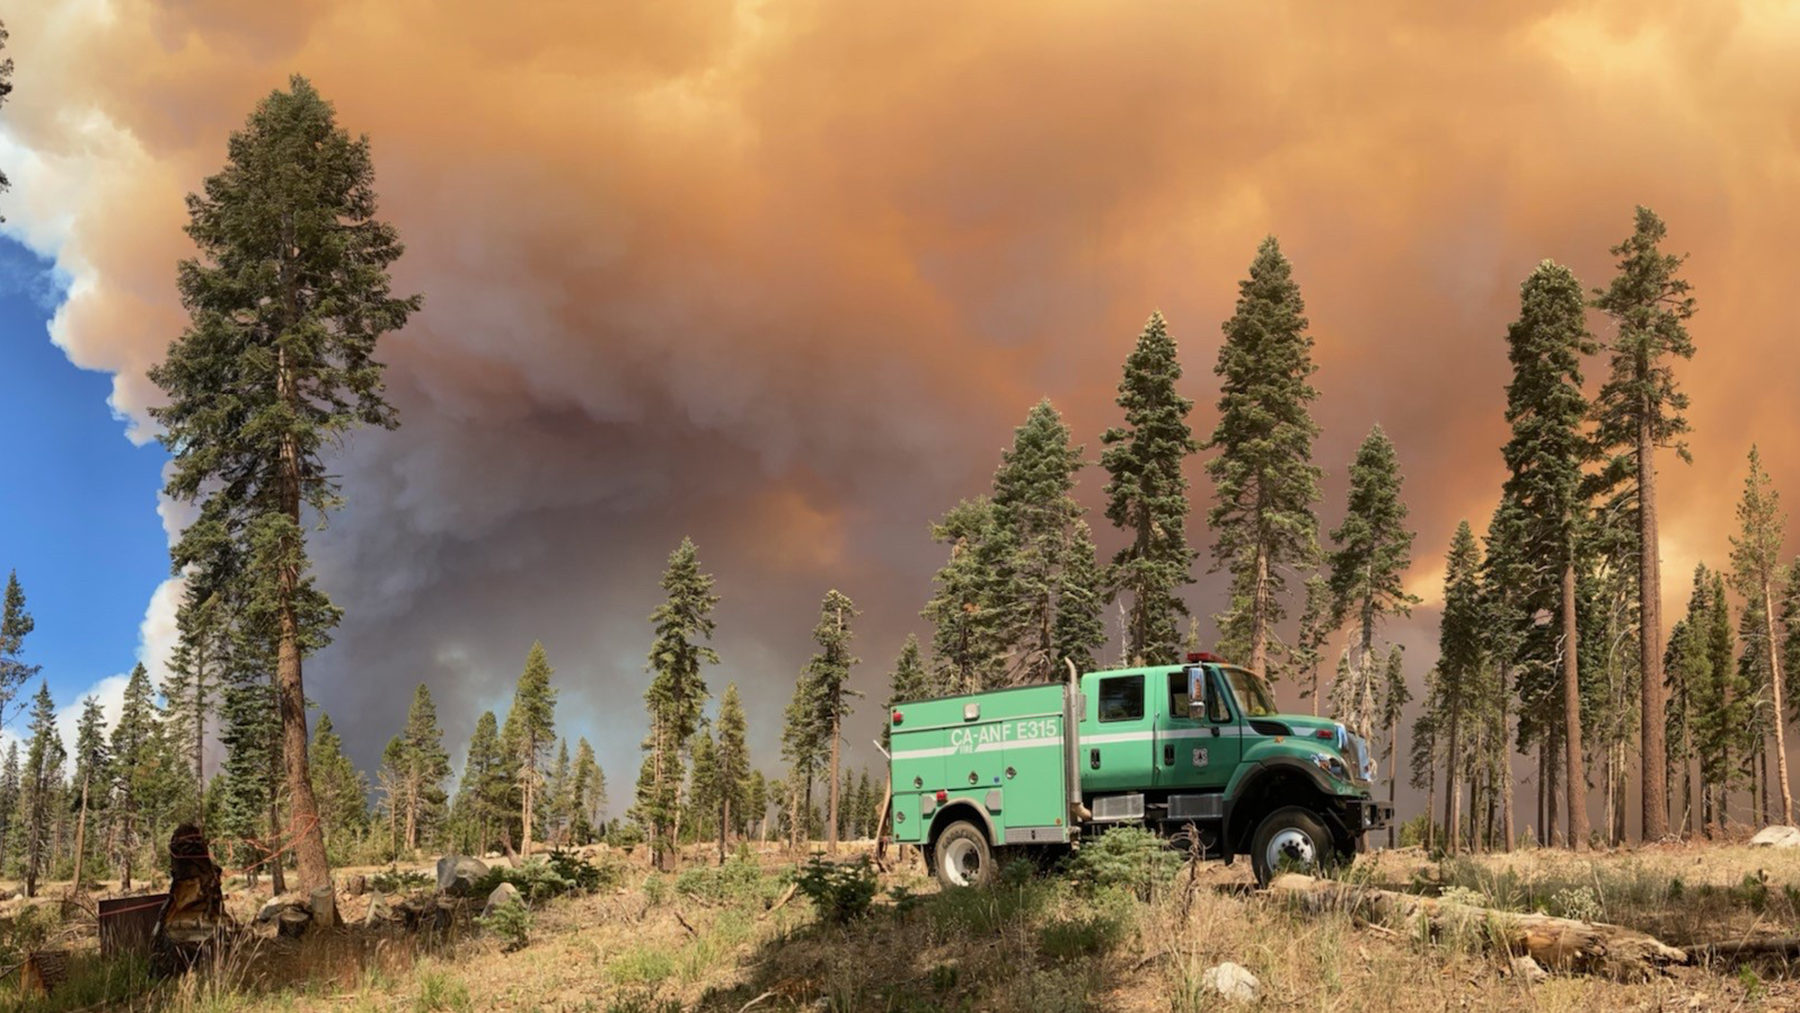 Engines respond to the Caldor Fire, a blaze that has caused more than 22,000 residents to evacuate the Lake Tahoe area. Fires across California and the Western U.S. are active, and Direct Relief is supporting local health facilities with medical aid. (U.S. National Forest Service photo)